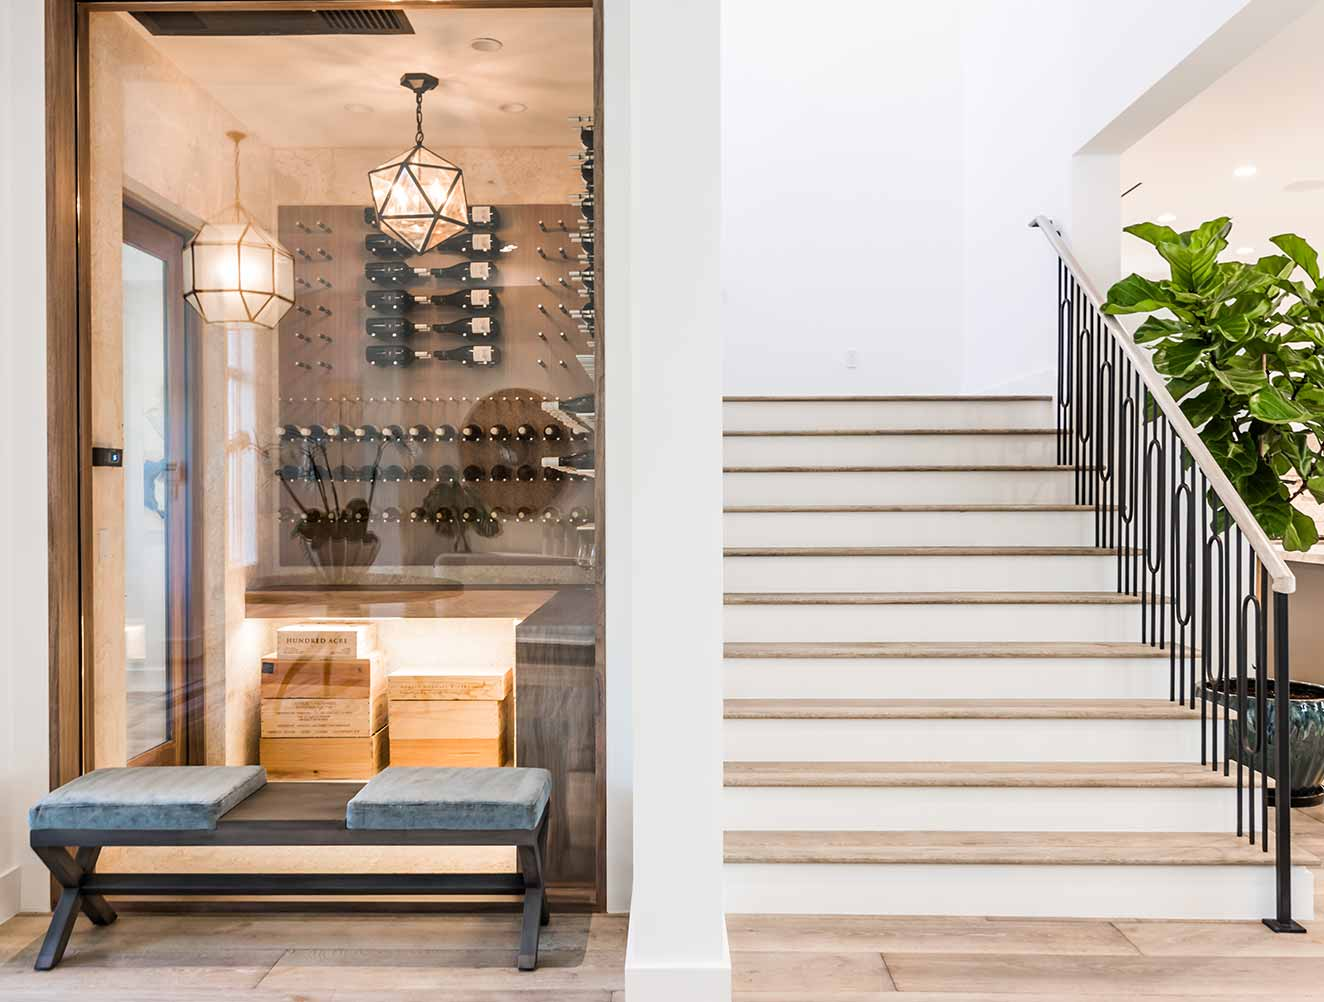 Portfolio of Custom Staircase Design in Naples, Florida Luxury Homes. Staircase and wine cellar. Designed by Kukk Architecture & Design Naples